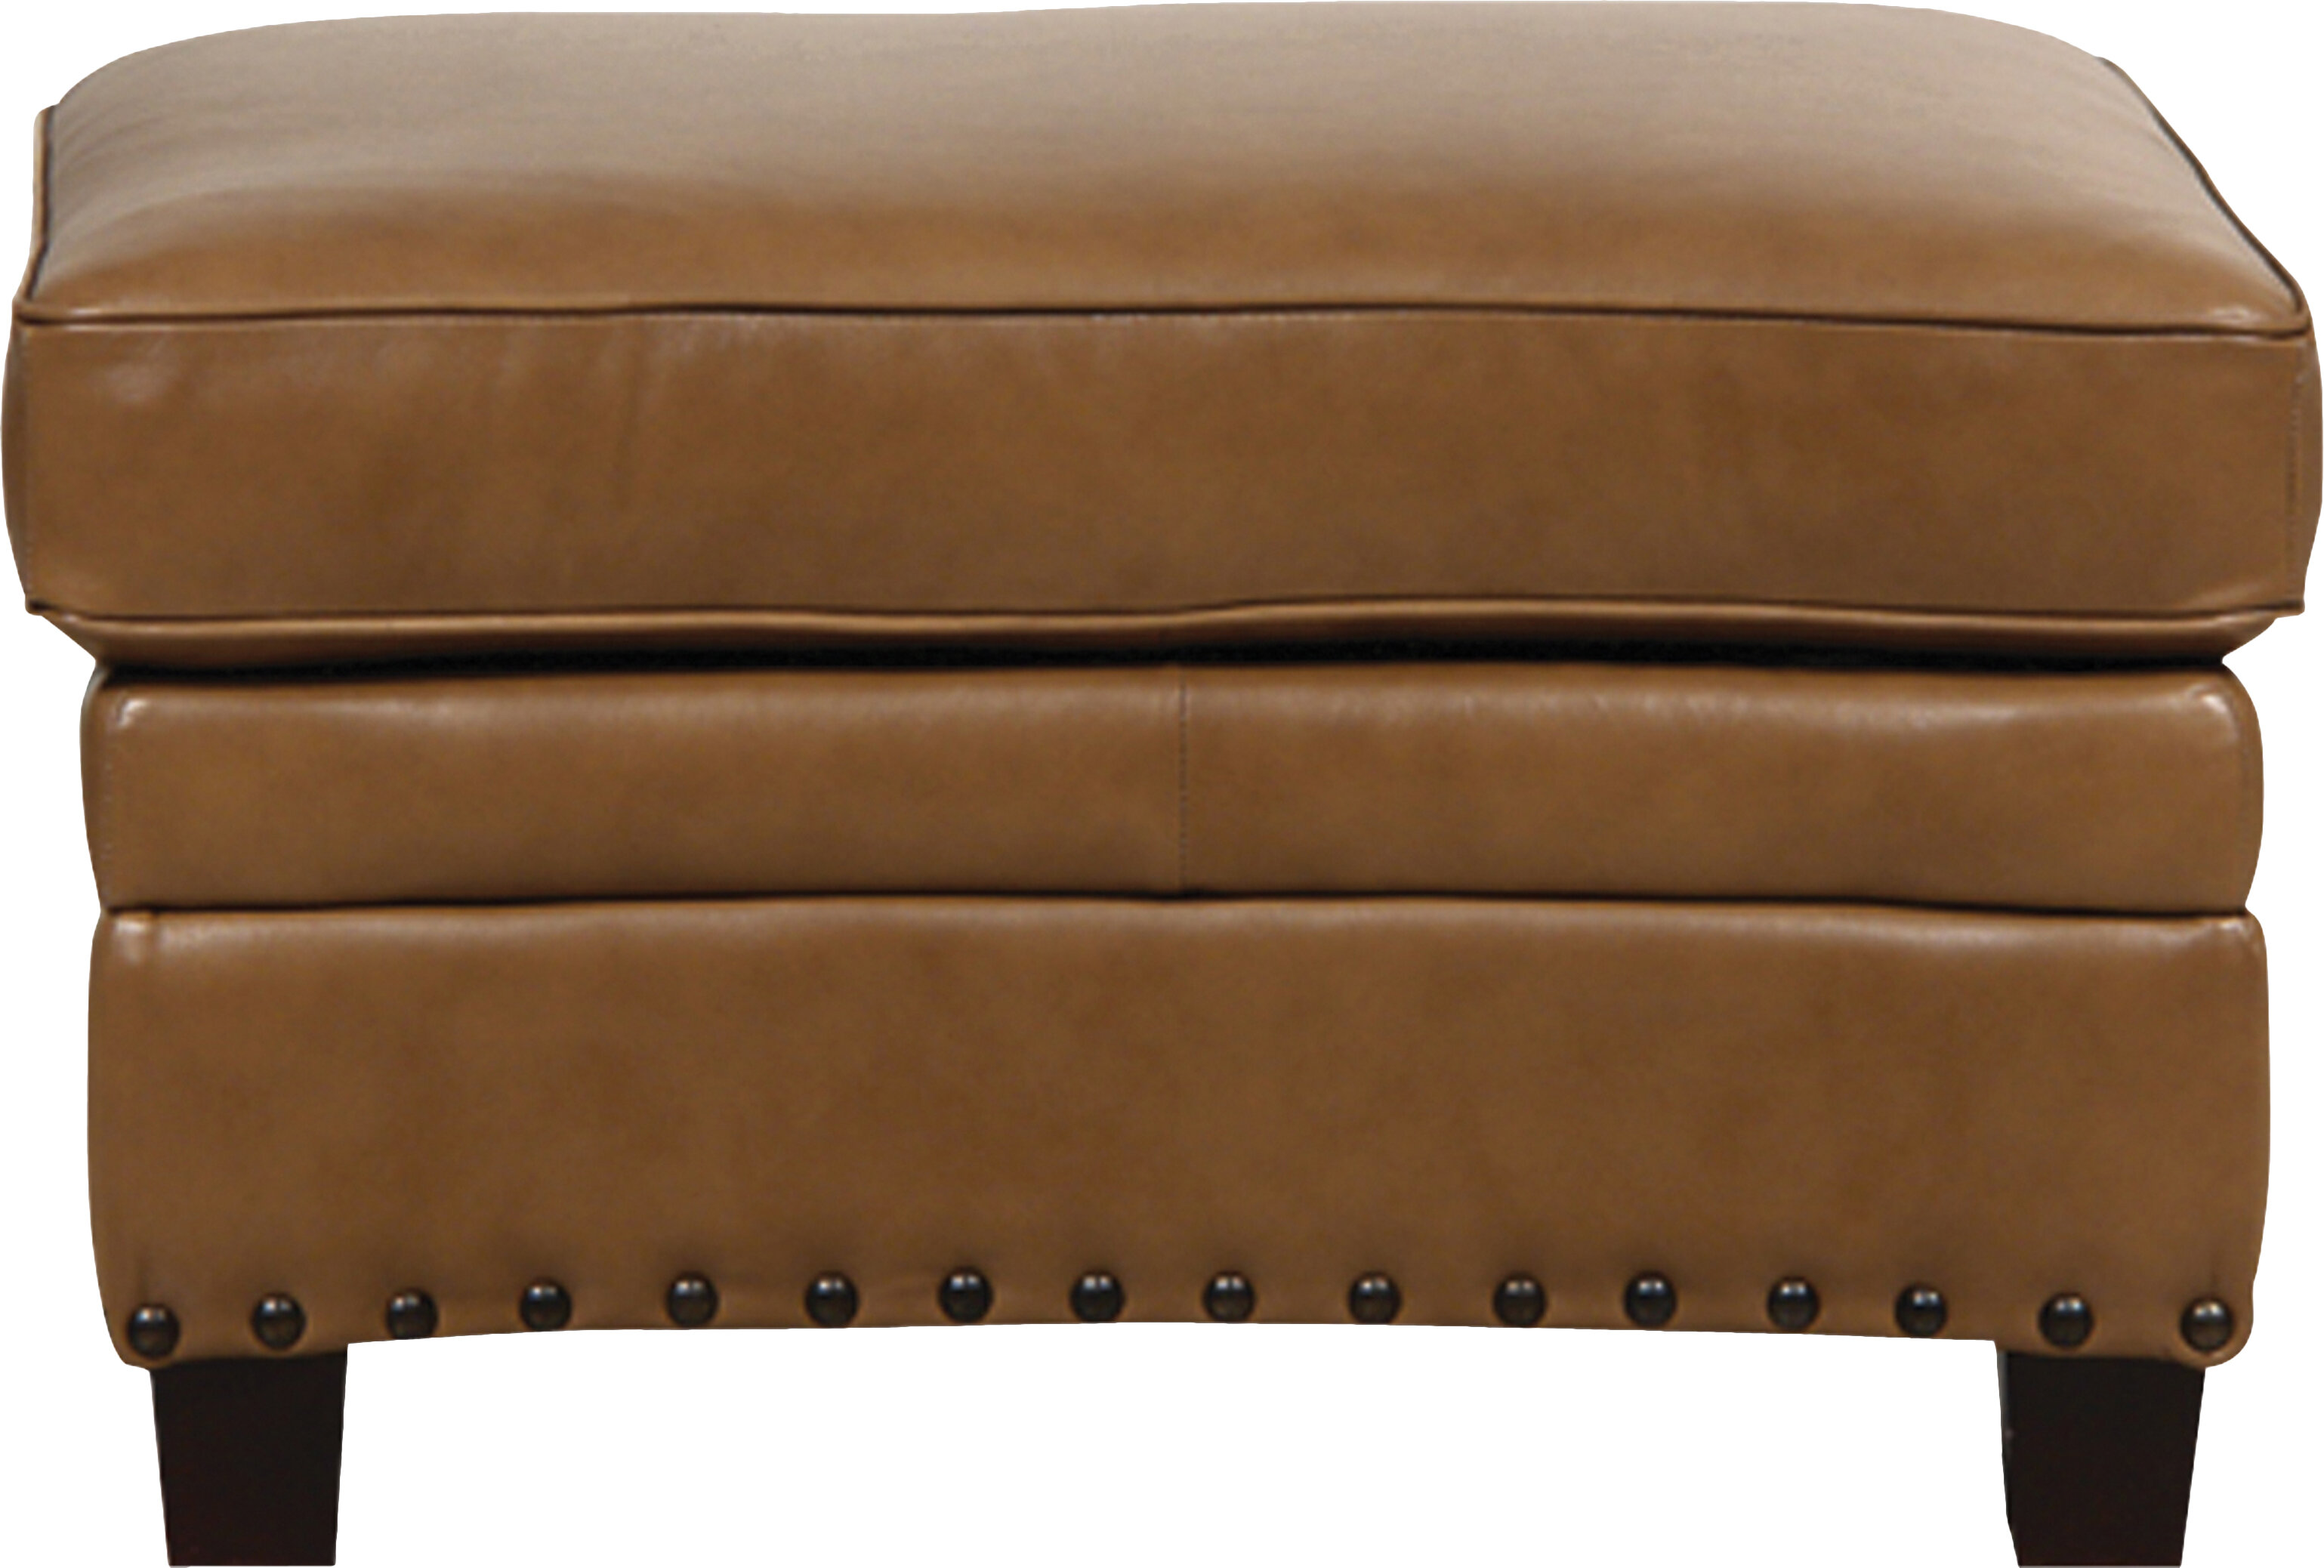 Darby home co hubbard leather storage ottoman reviews wayfair